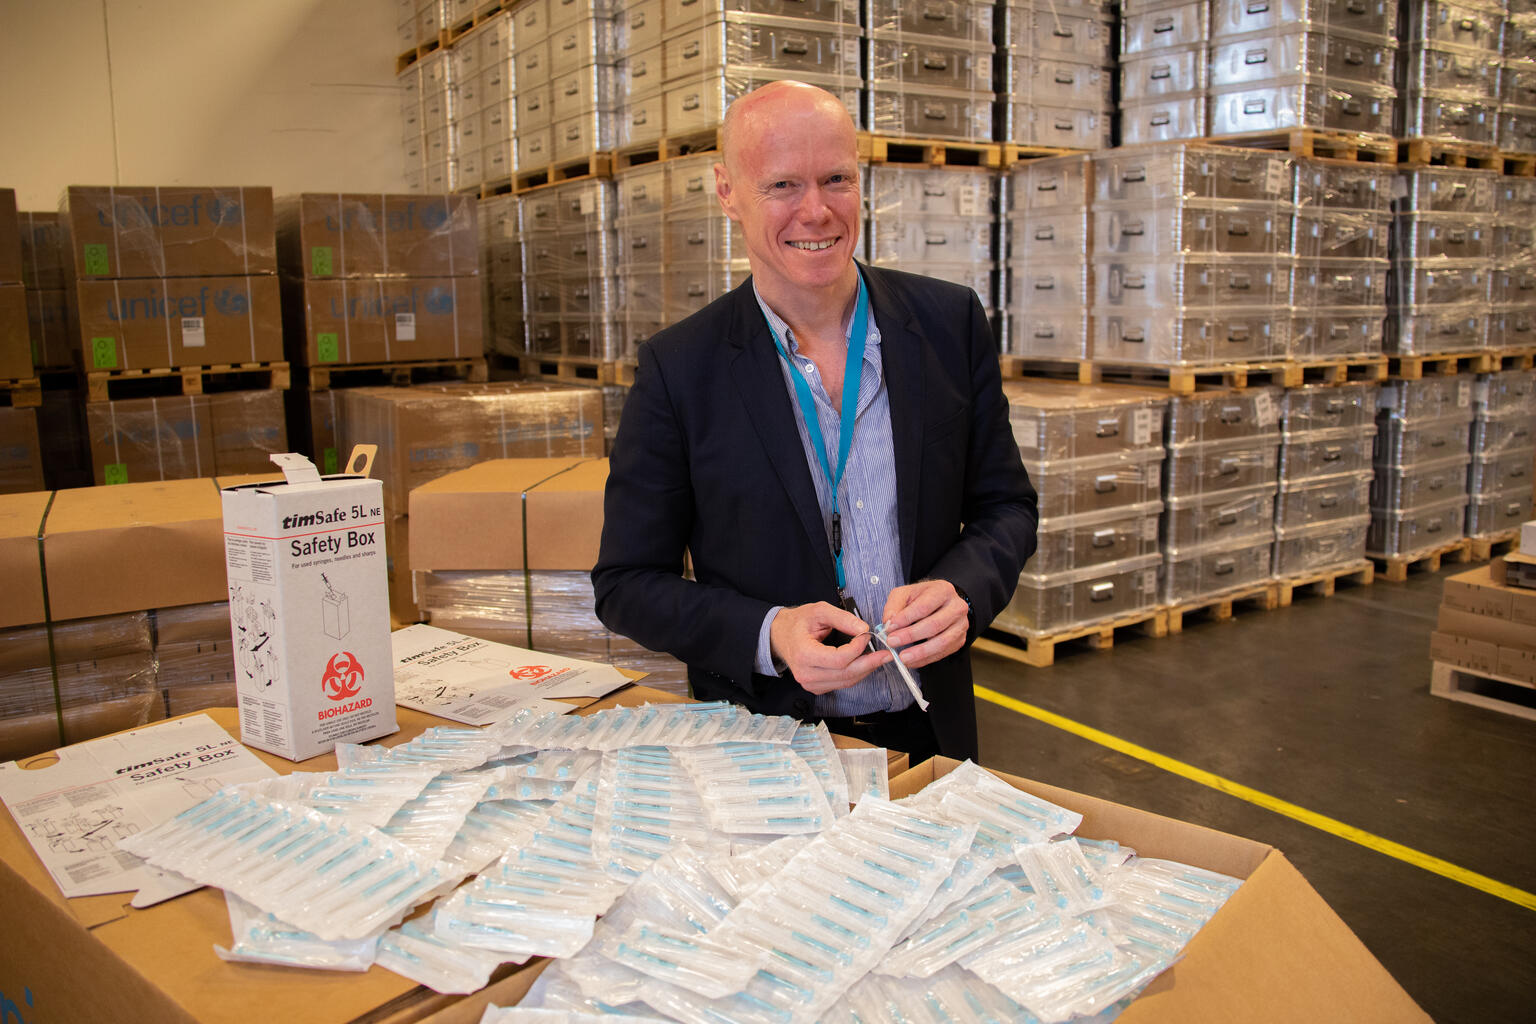 Robert Matthews, head of the Medical Devices Unit at UNICEF Supply Division